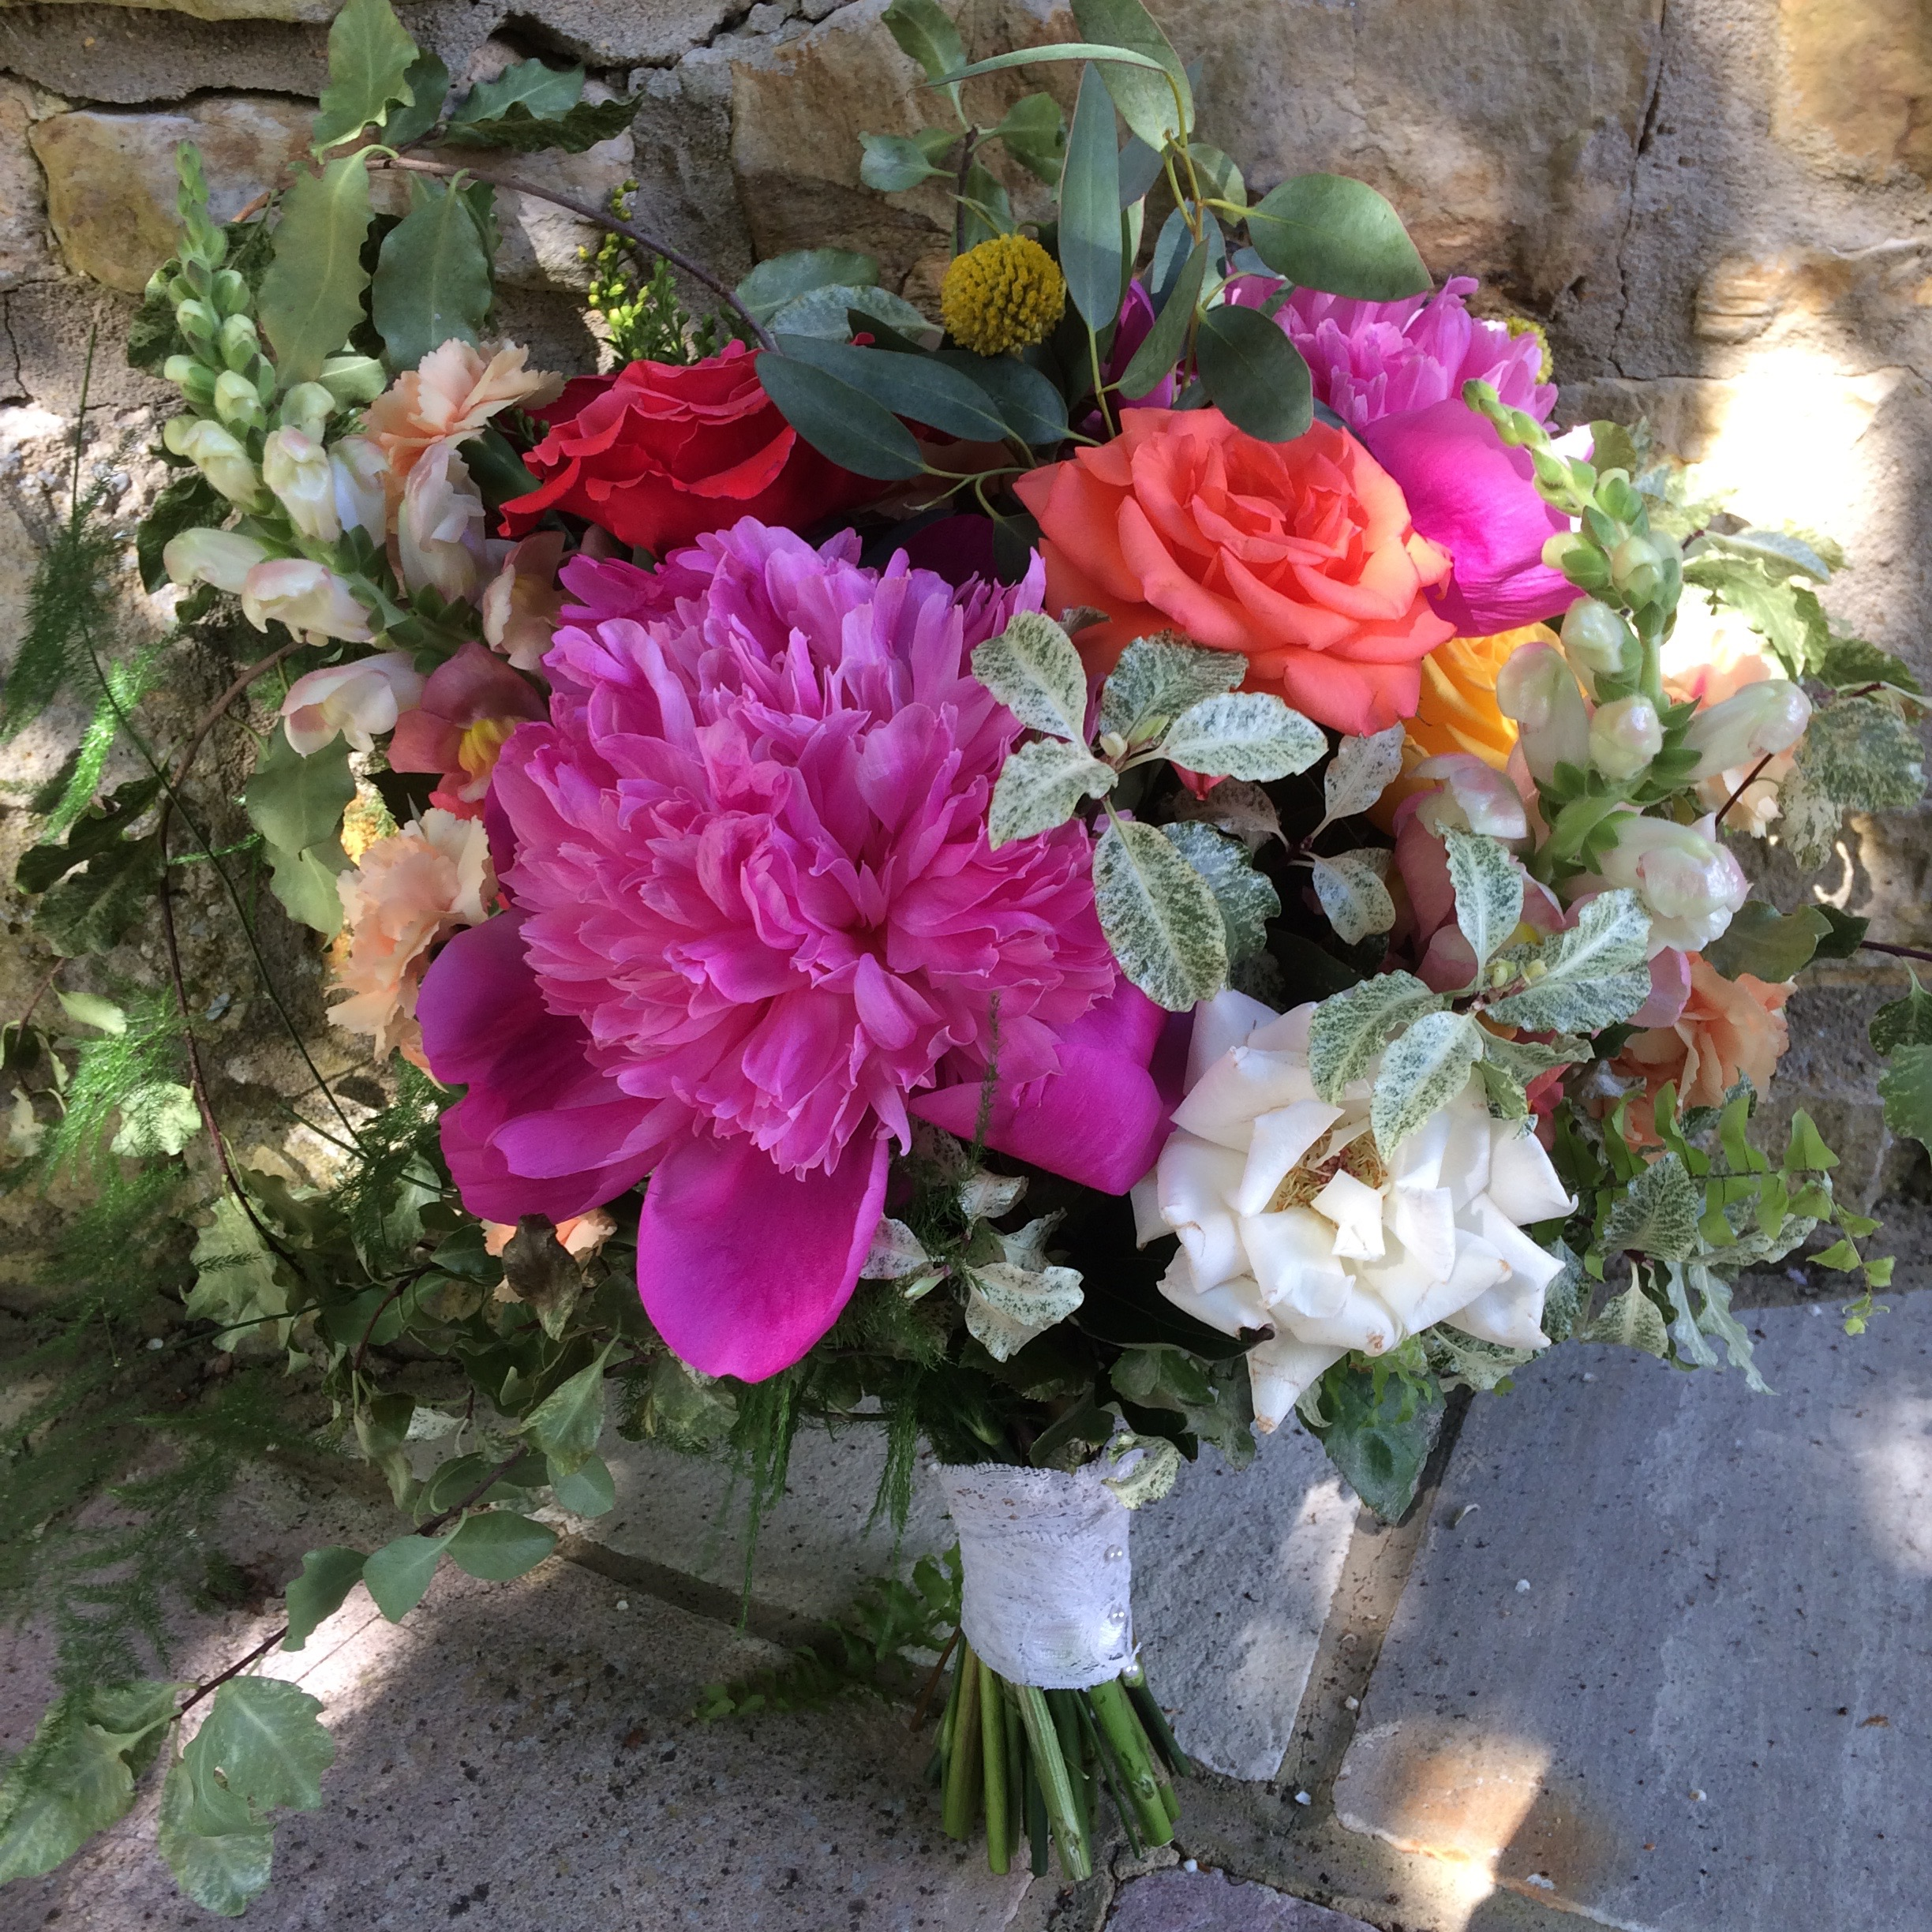 colourful bridal bouquet in June with peonies and English roses